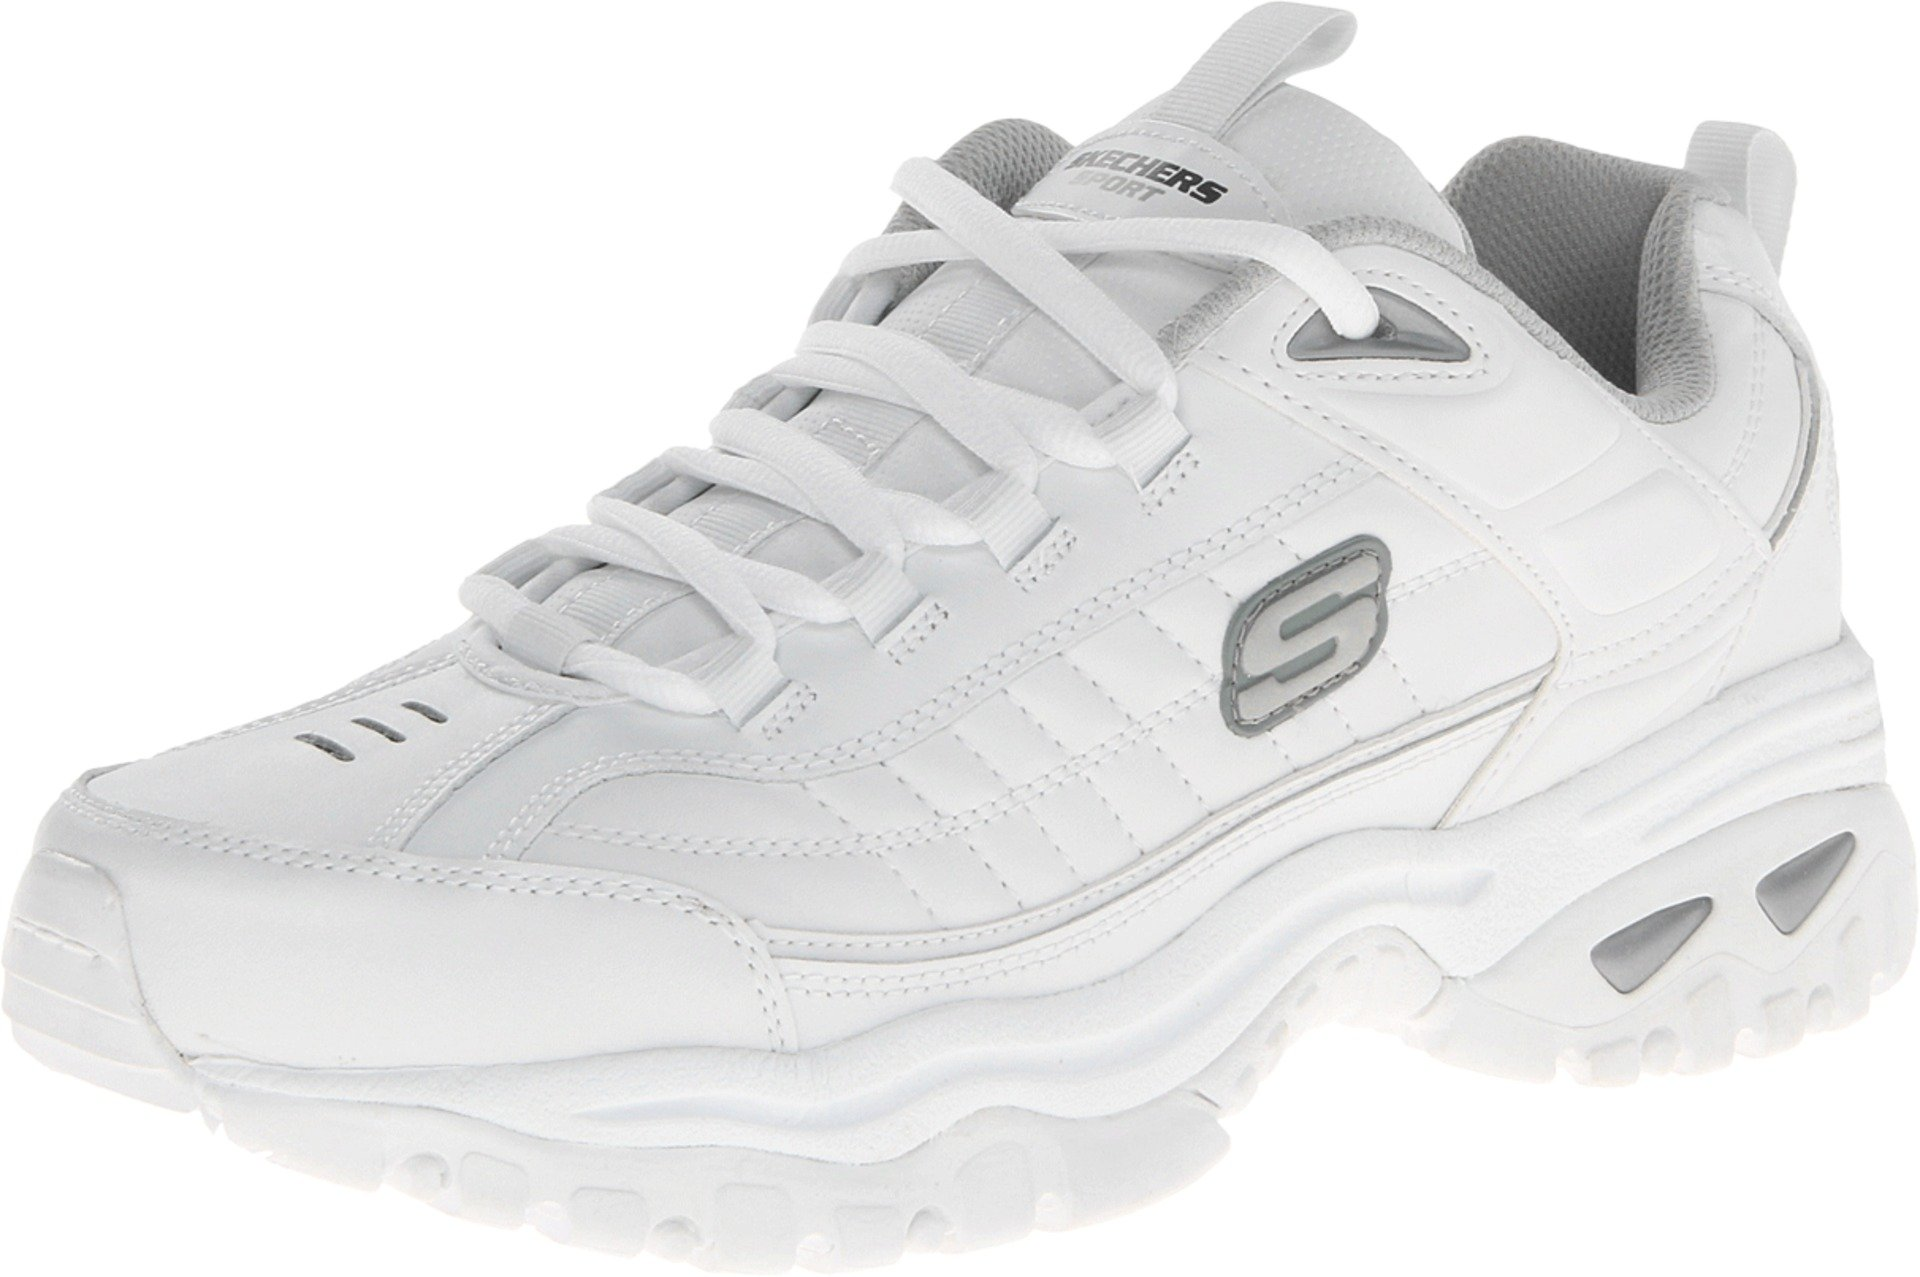 Skechers Men's Energy Afterburn Lace-Up Sneaker,White,15 M US by Skechers